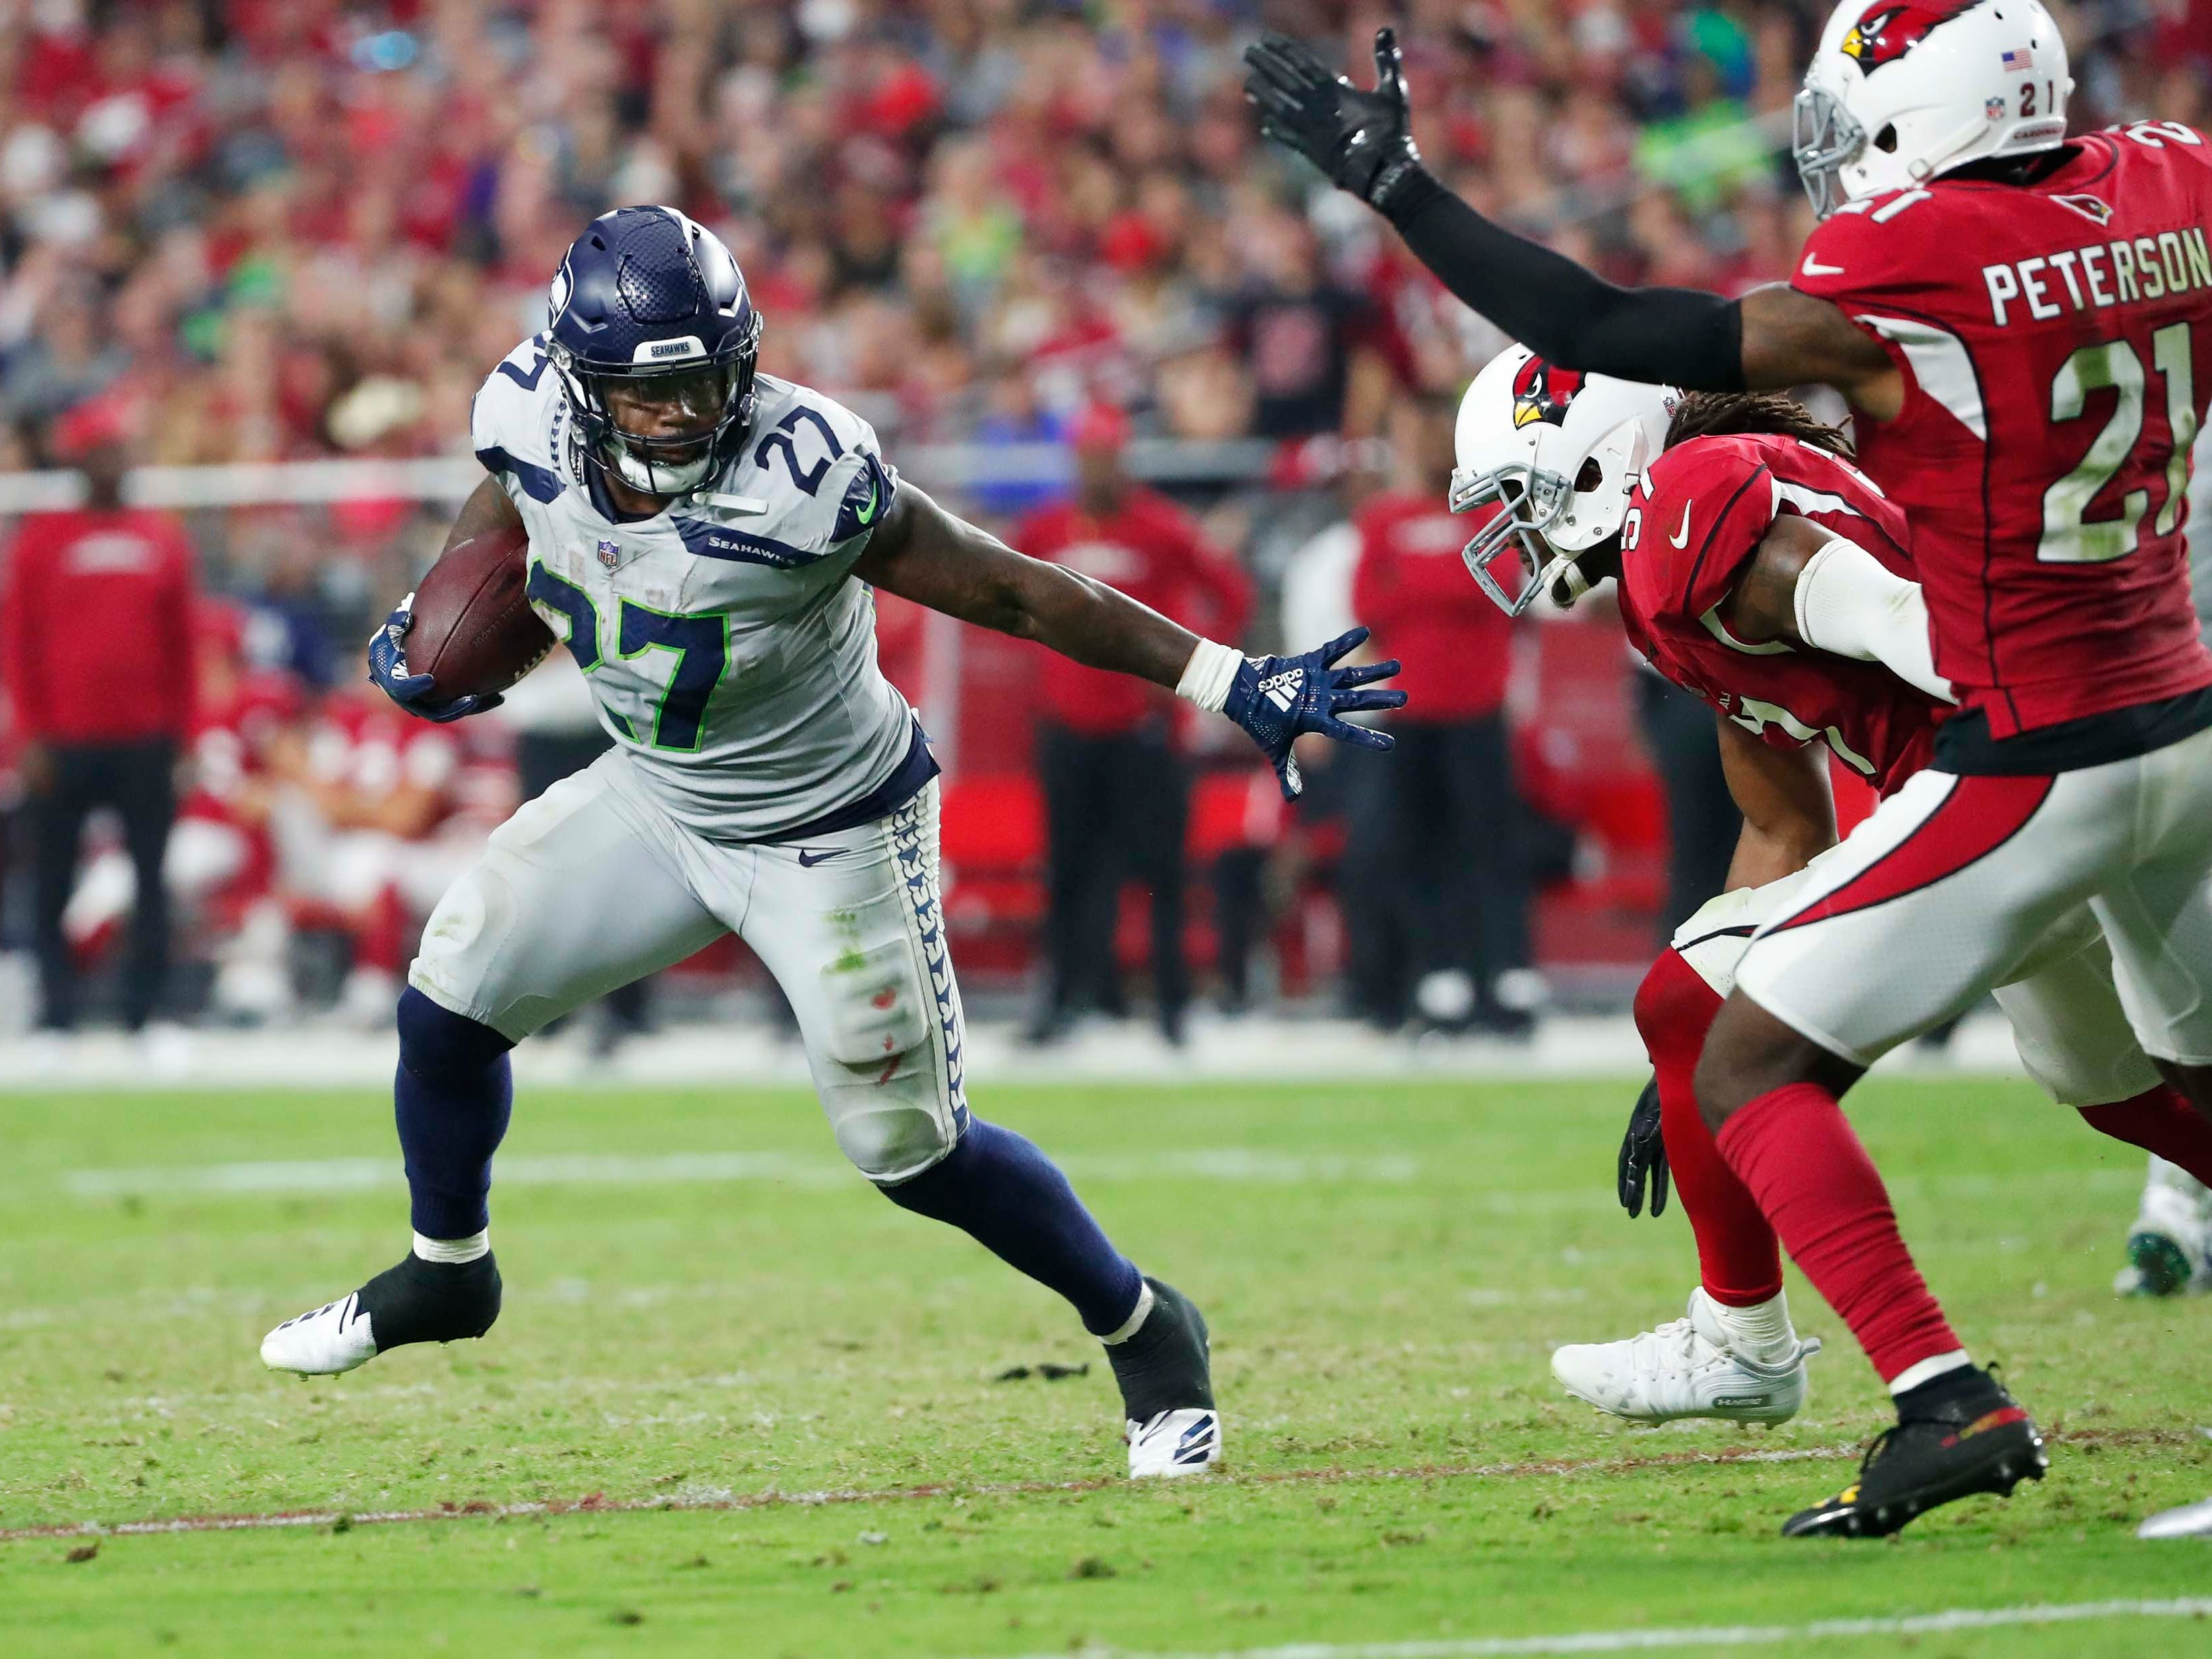 Seattle Seahawks running back Mike Davis (27) runs against Arizona Cardinals linebacker Josh Bynes (57) and defensive back Patrick Peterson (21) during the third quarter at State Farm Stadium in Glendale, Ariz. September 30, 2018.